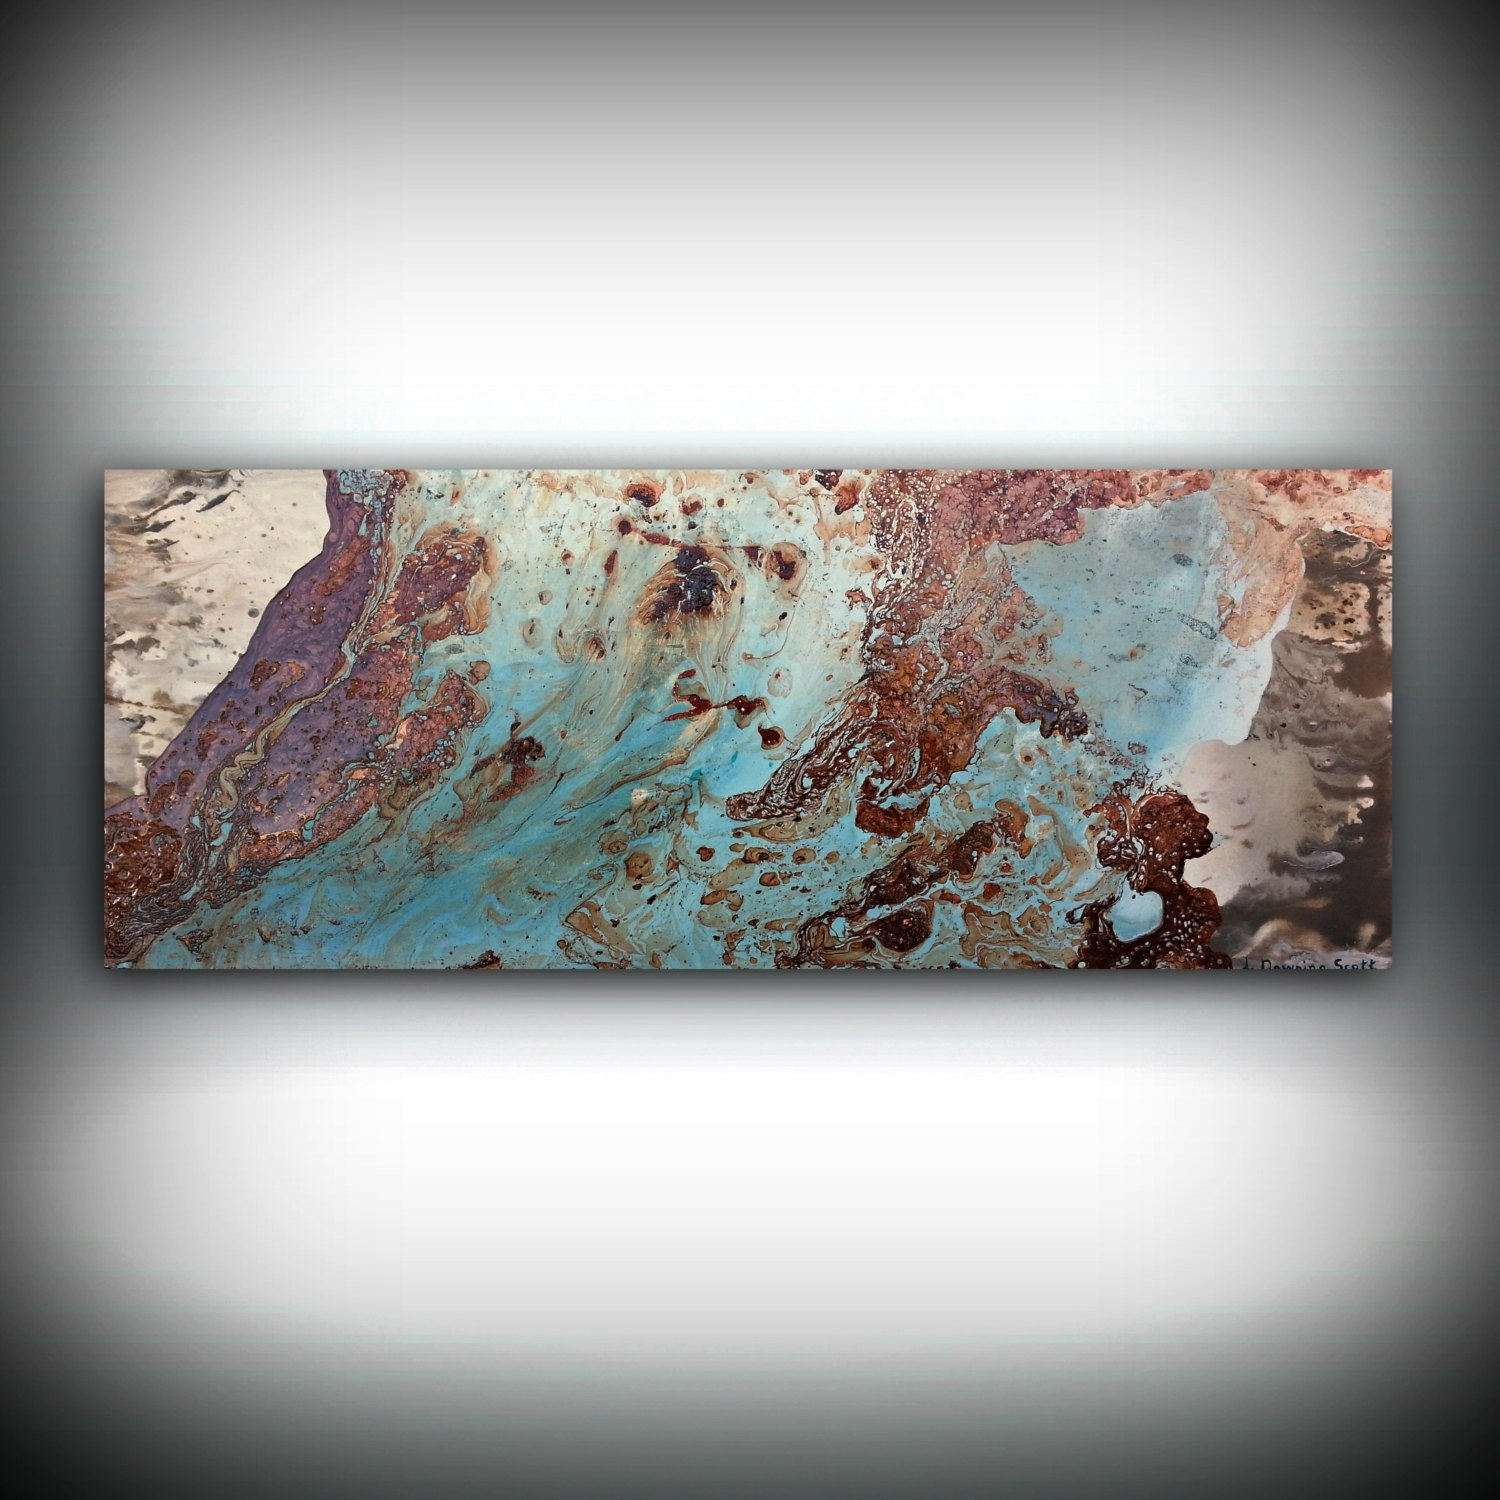 Copper Coastal Painting 16 X 40, Acrylic Painting On Canvas Regarding Current Abstract Copper Wall Art (View 13 of 20)